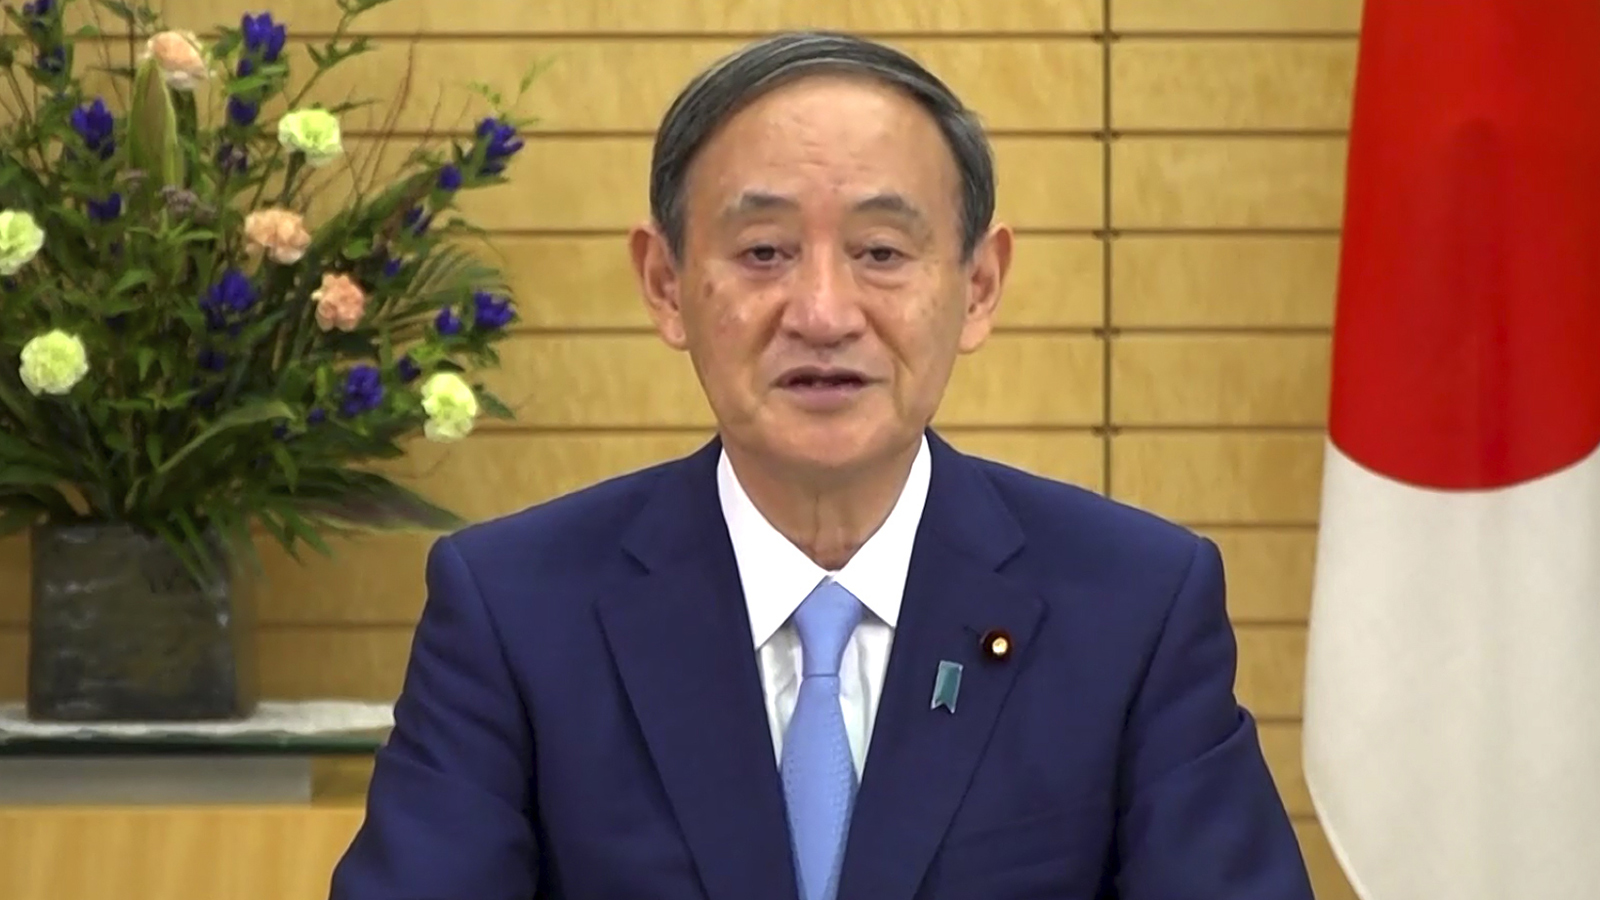 In this photo made from UNTV video, Suga Yoshihide, Prime Minister of Japan, speaks in a pre-recorded message which was played during the 75th session of the United Nations General Assembly on Friday, Sept. 25, 2020, at UN Headquarters.